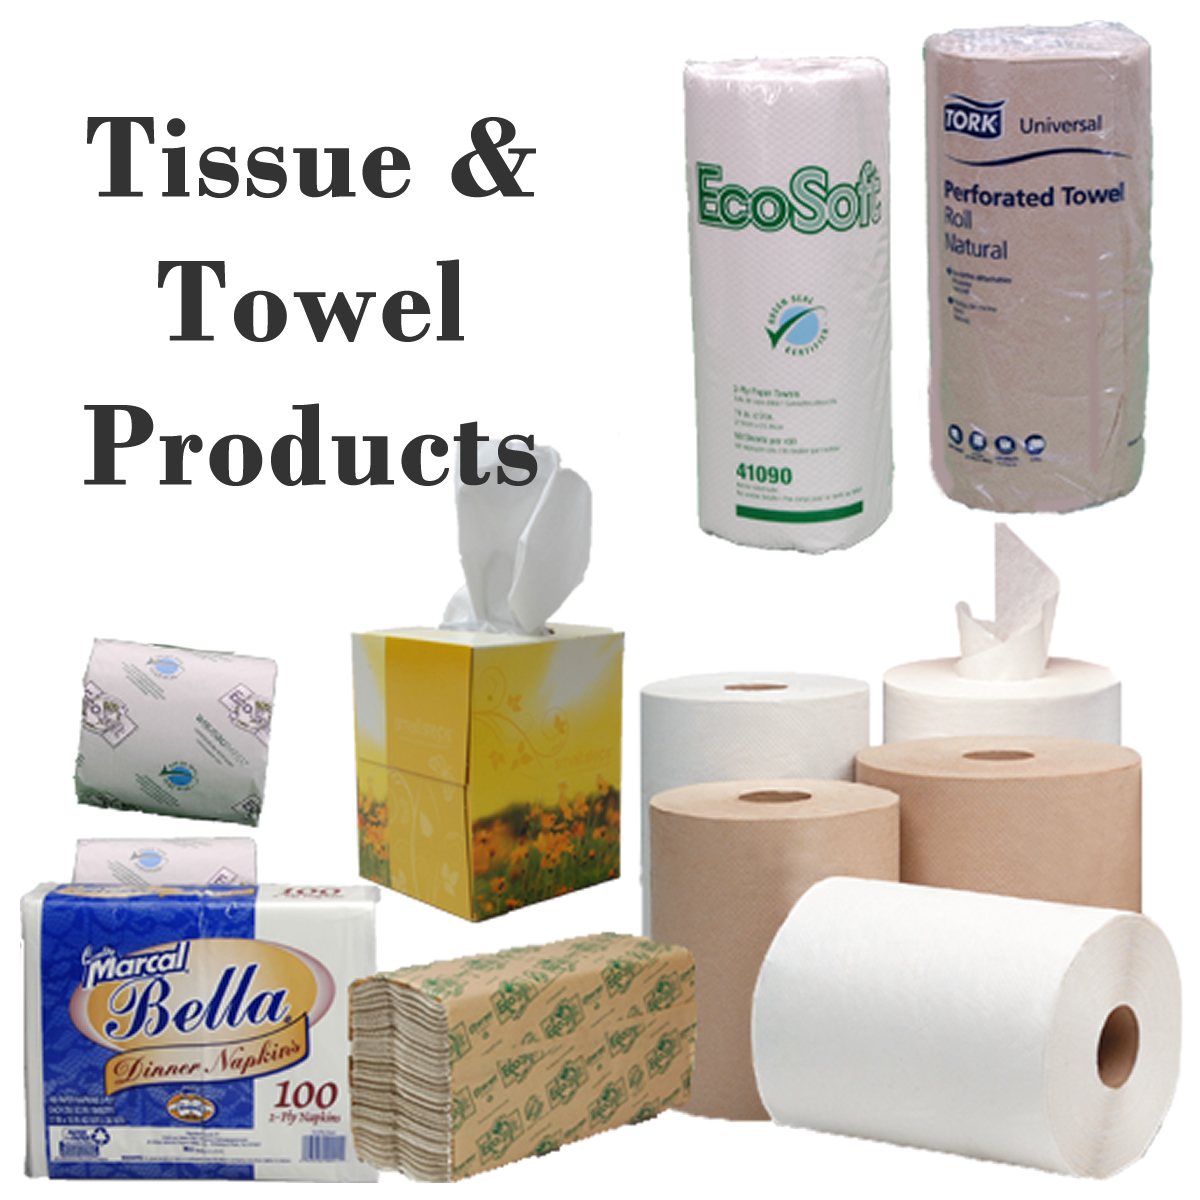 Tissue & Towel Products